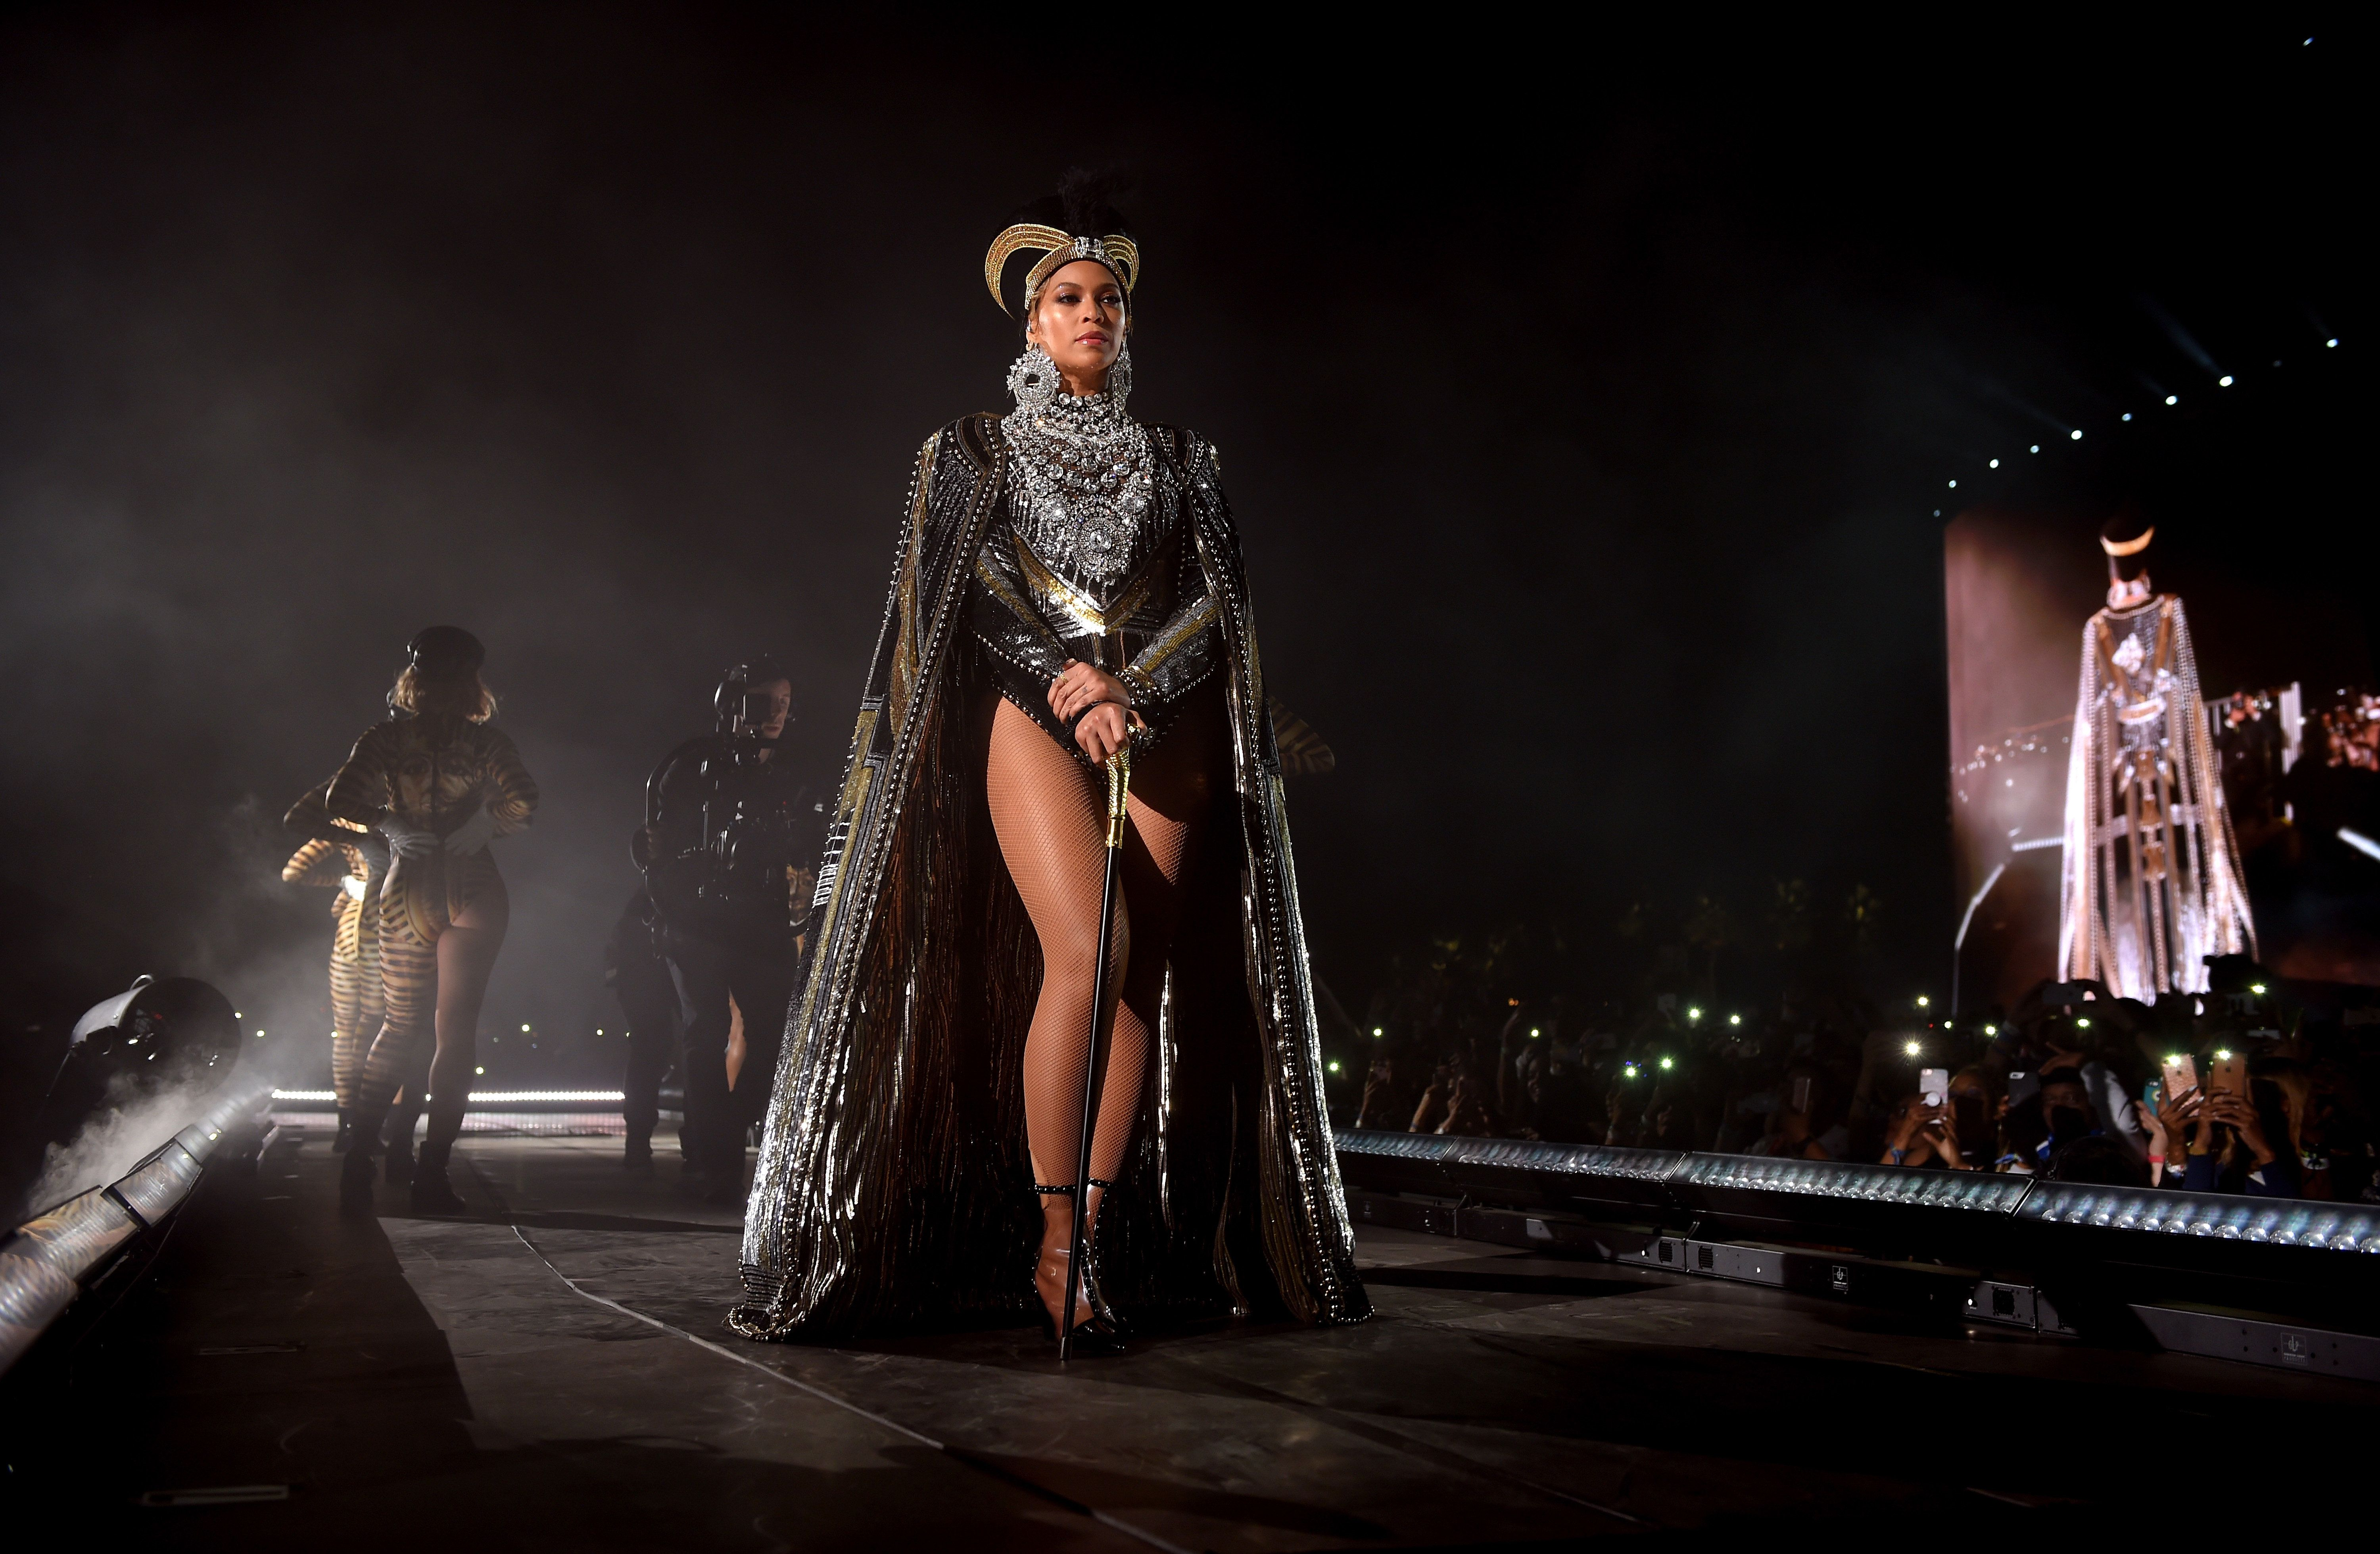 Beyoncé reigns at Coachella once again